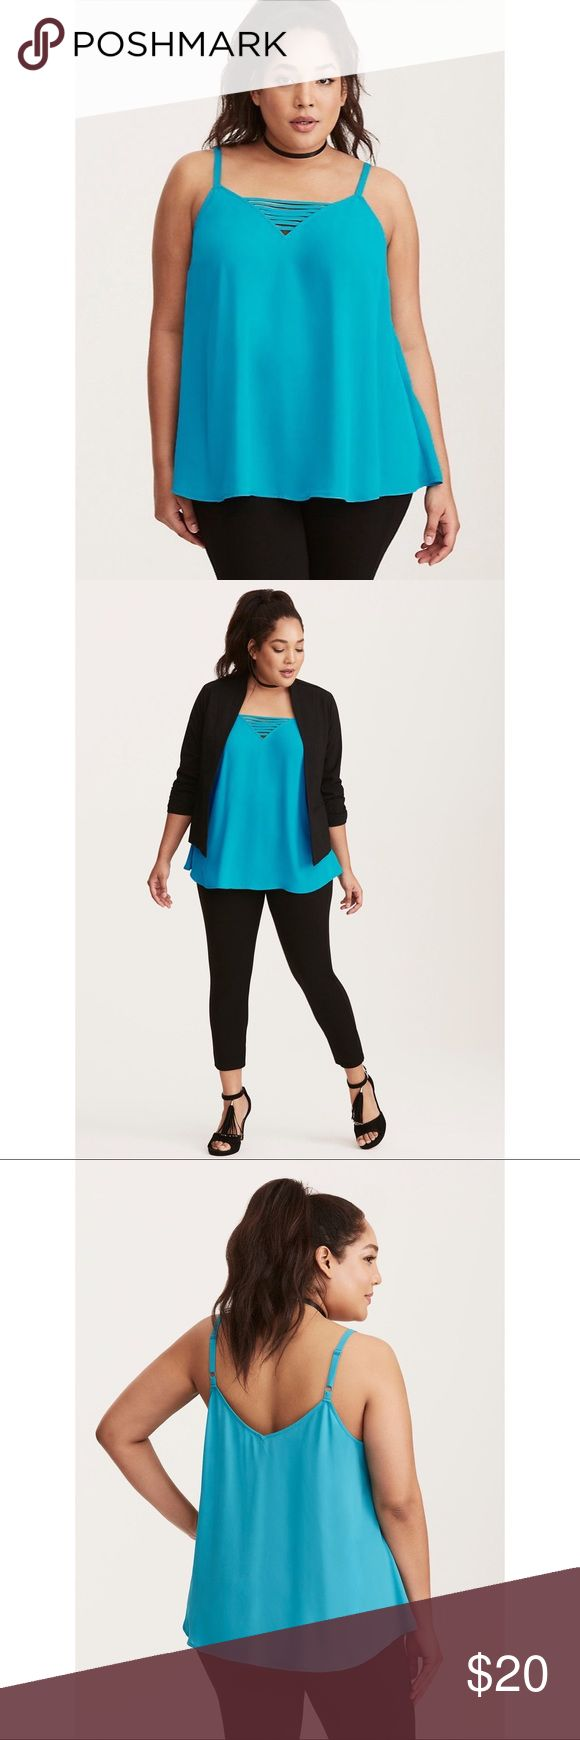 "NWOT Torrid Cami Go ahead call us an outfit repeater; with this cami top we have no shame. The bright  teal chiffon is our lightweight go-to come summer, with a flowy fit and an airy feel. The deep v dresses up the look ever-so-slightly, while the strappy details define sexy. Torrid size 0  Model is 5'10"", size 1 * Polyester * Wash cold, dry low * Imported plus size cami  ➡️No Trades. ➡️No Lowball Offers. ➡️No Holds. ➡️Bundle and save! torrid Tops Camisoles"